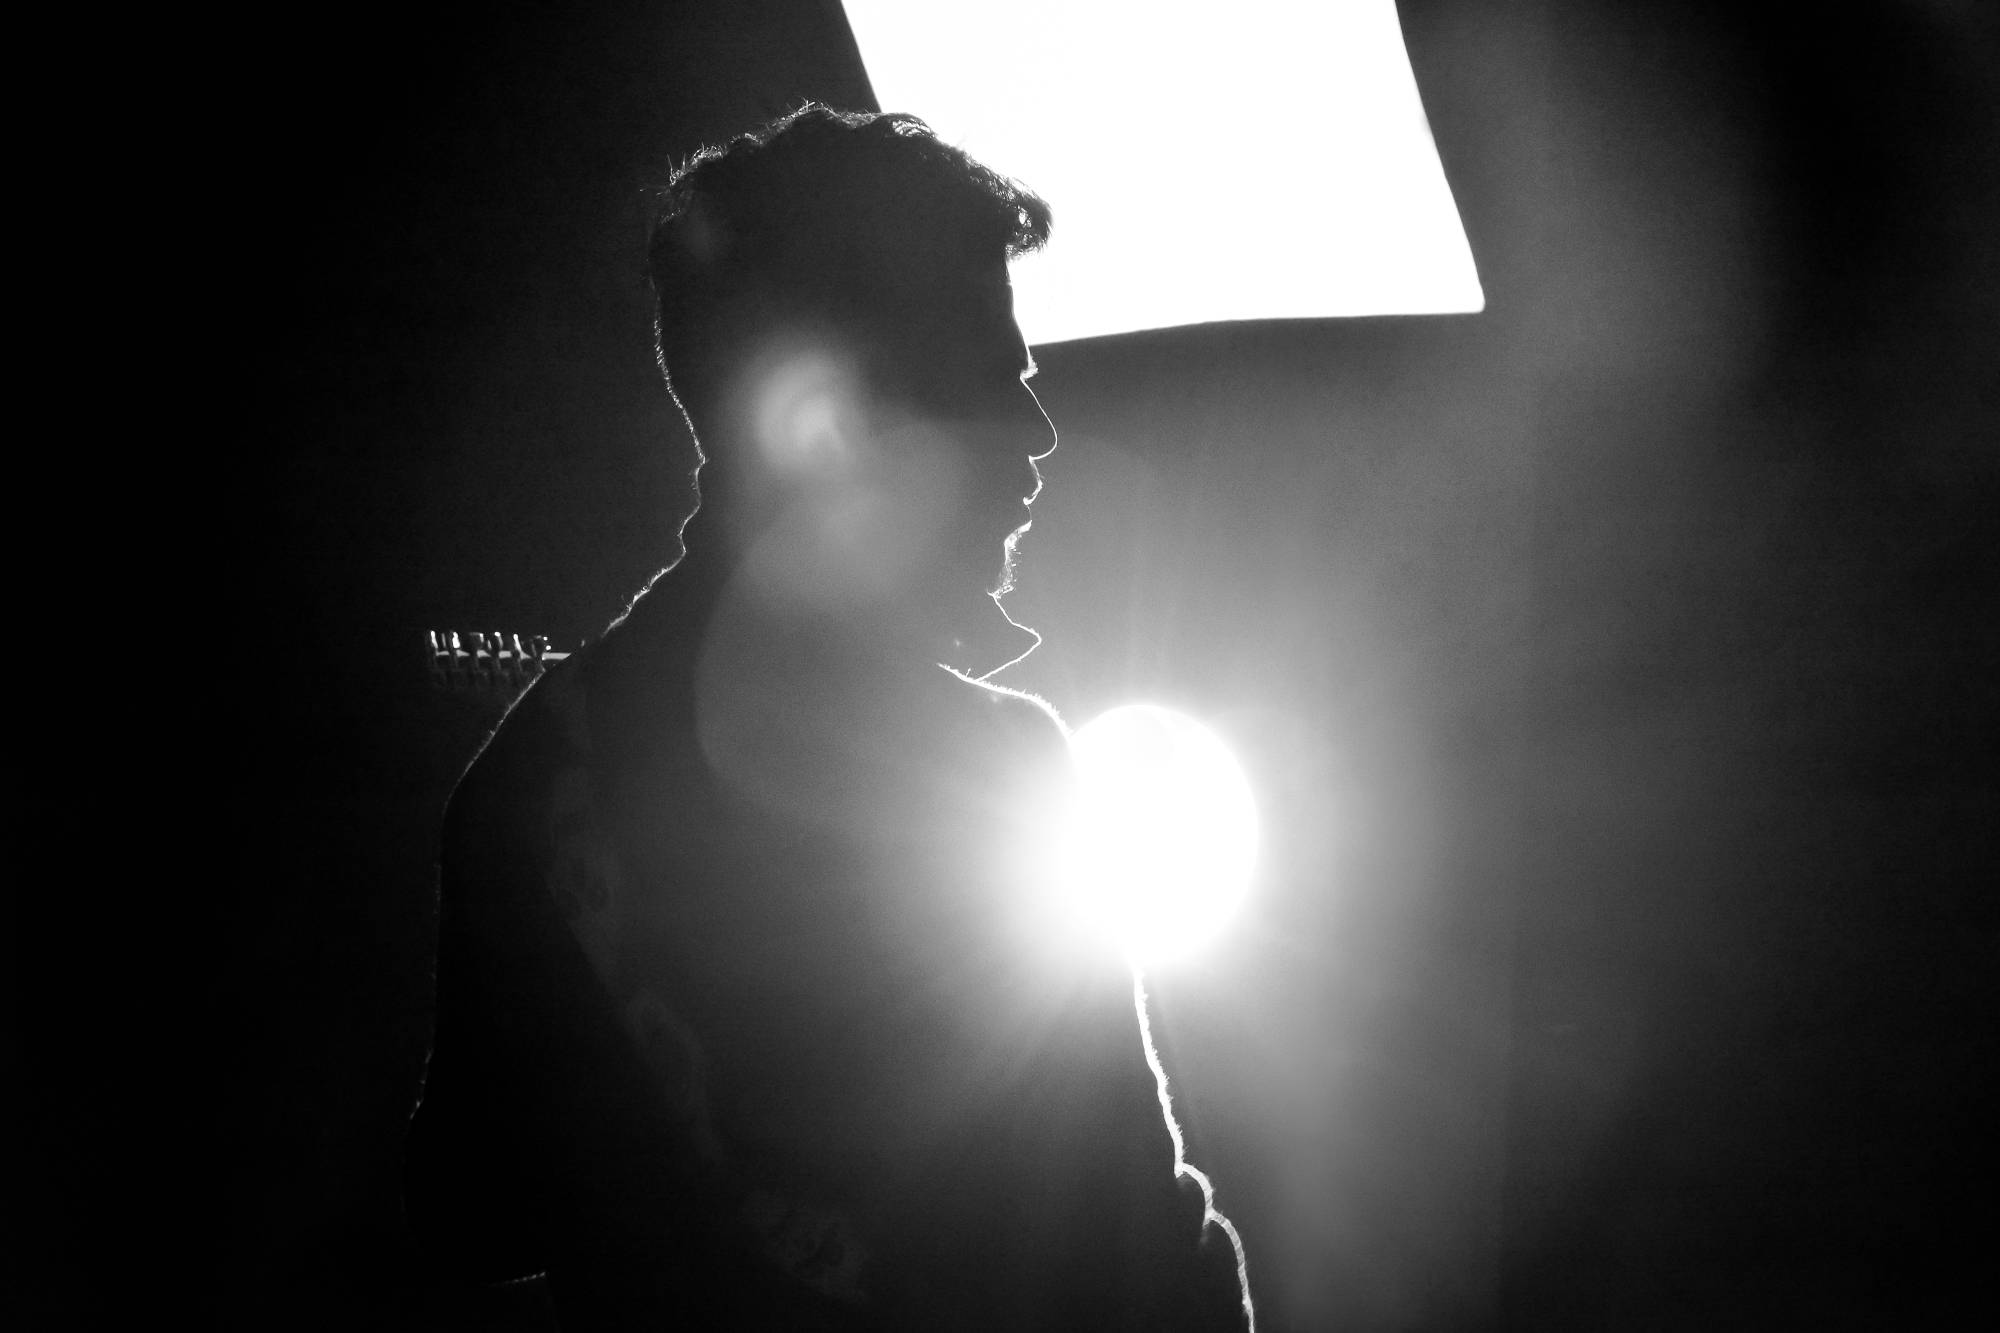 silhouette of a guy - solving common lighting issues